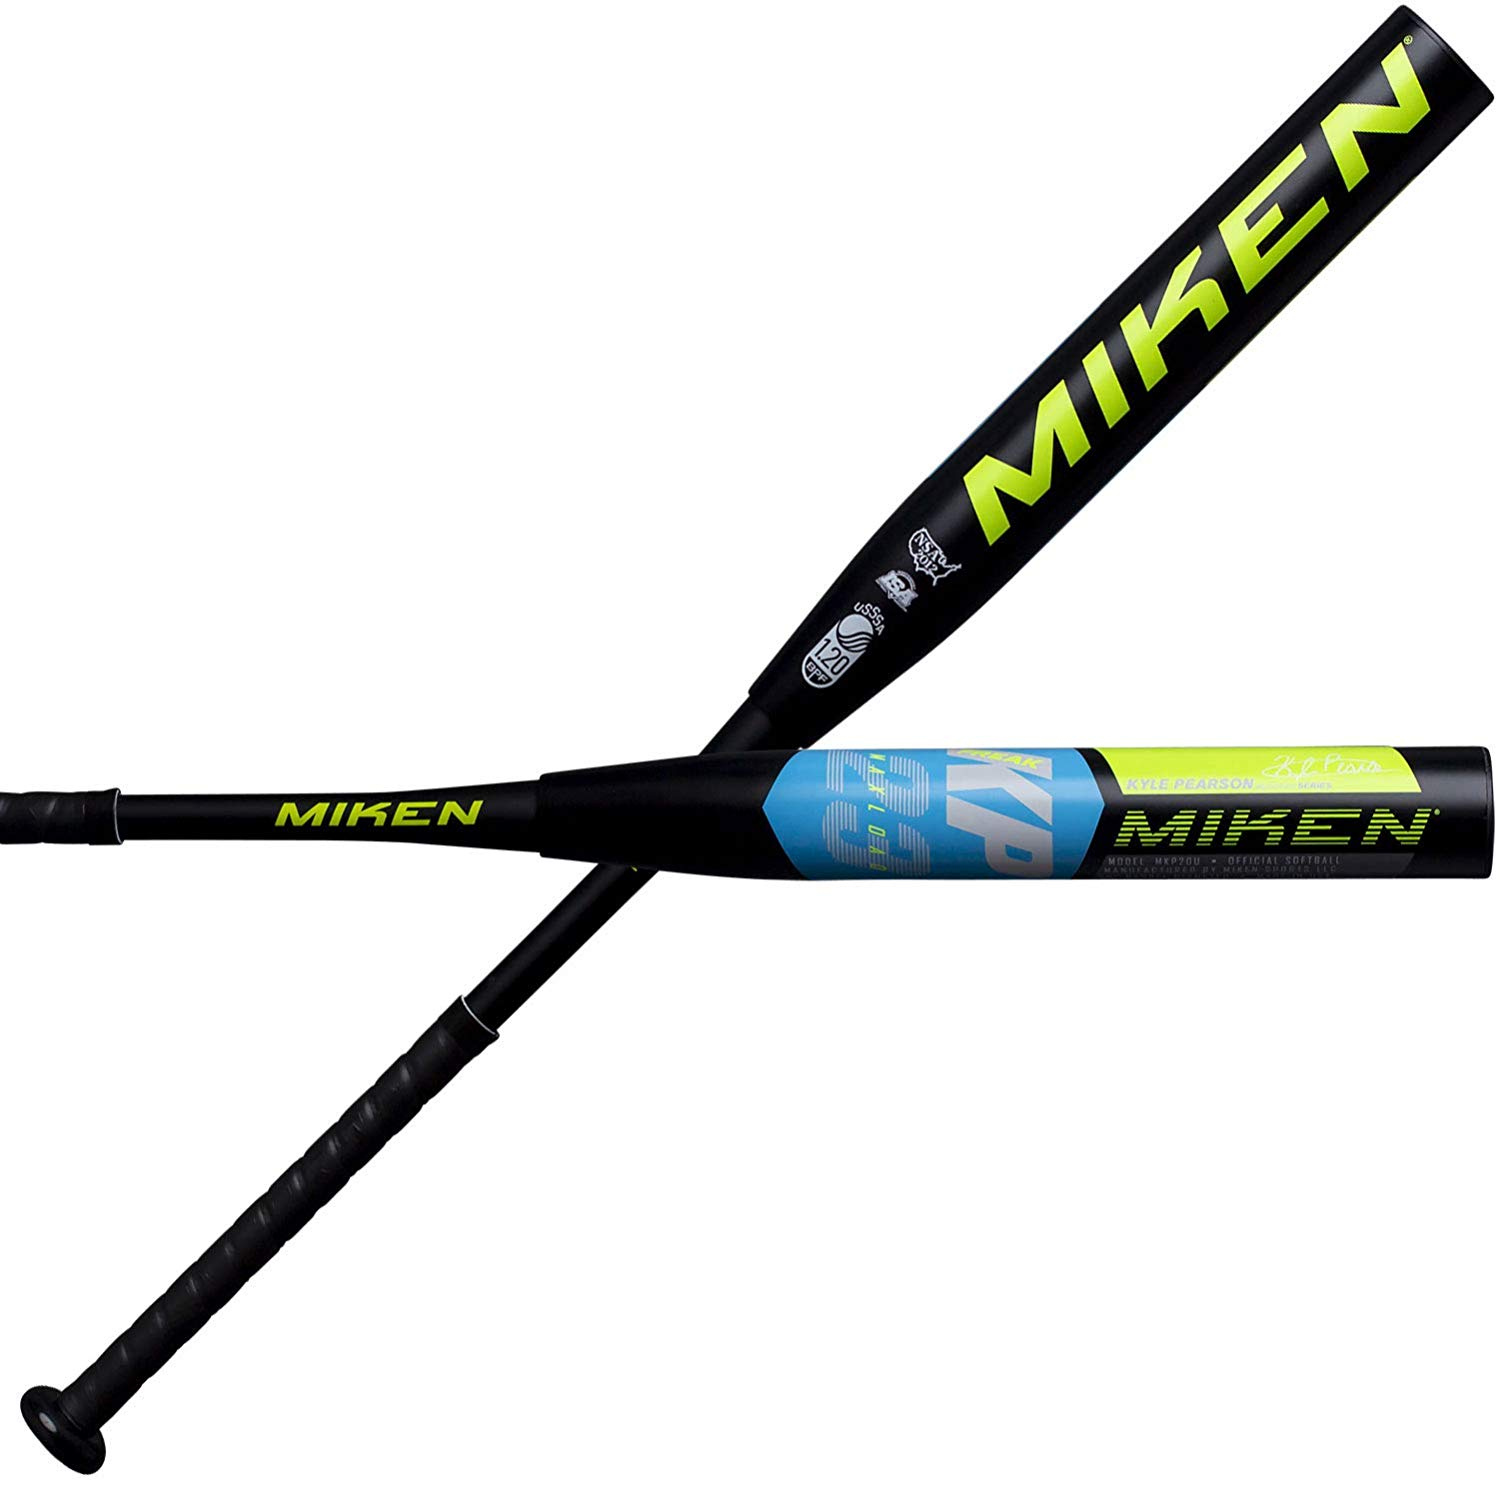 miken-2020-kyle-pearson-freak-23-maxload-usssa-slow-pitch-softball-bat-34-inch-25-oz MKP20U-3-25 Miken 658925042881 DESIGNED FOR ADULTS PLAYING RECREATIONAL AND COMPETITIVE SLOWPITCH SOFTBALL this Miken